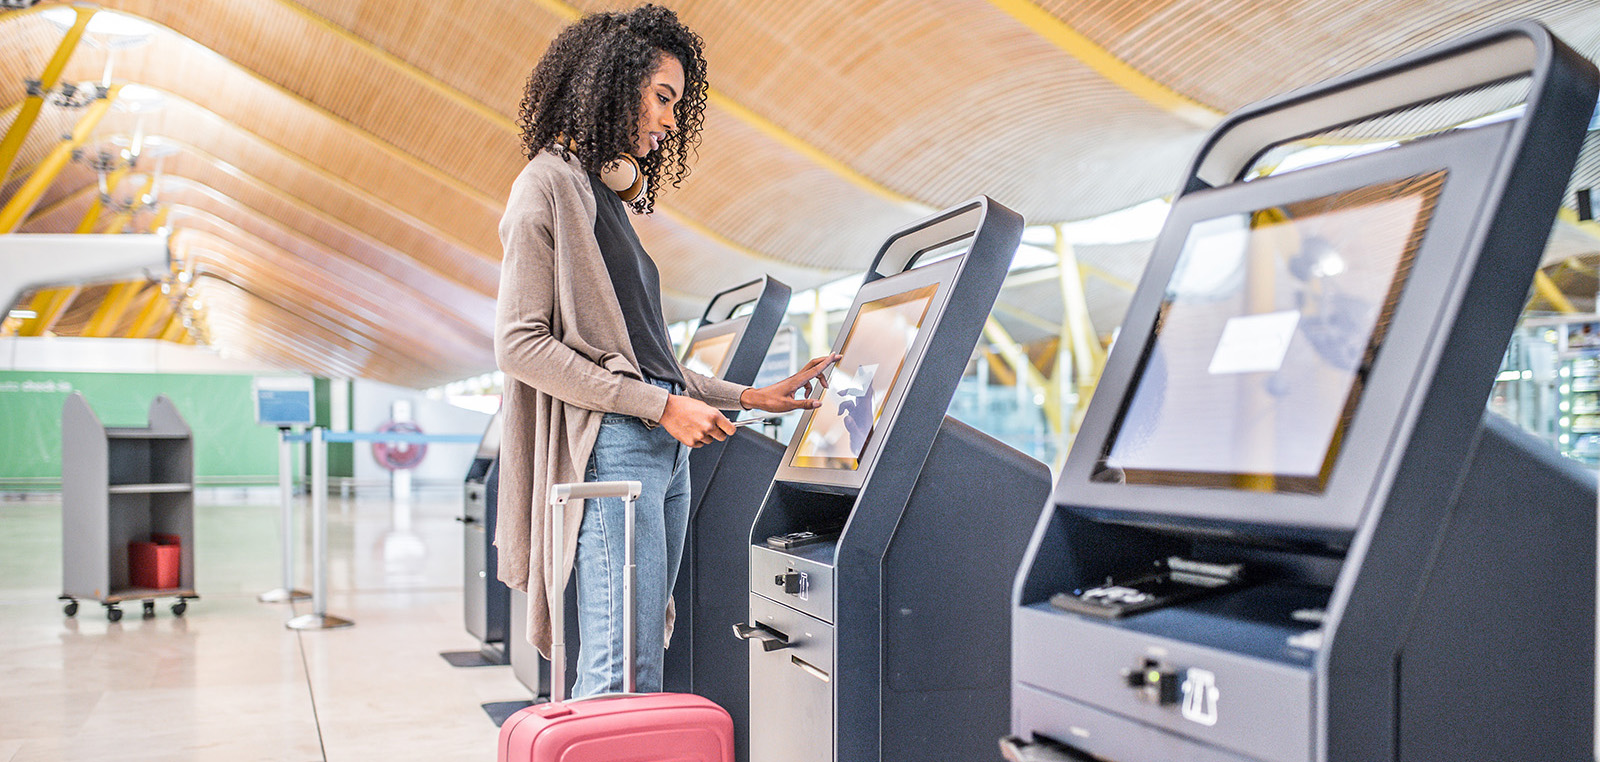 //www.experienceaisolutions.com/wp-content/uploads/2019/05/airport-security-v2.jpg